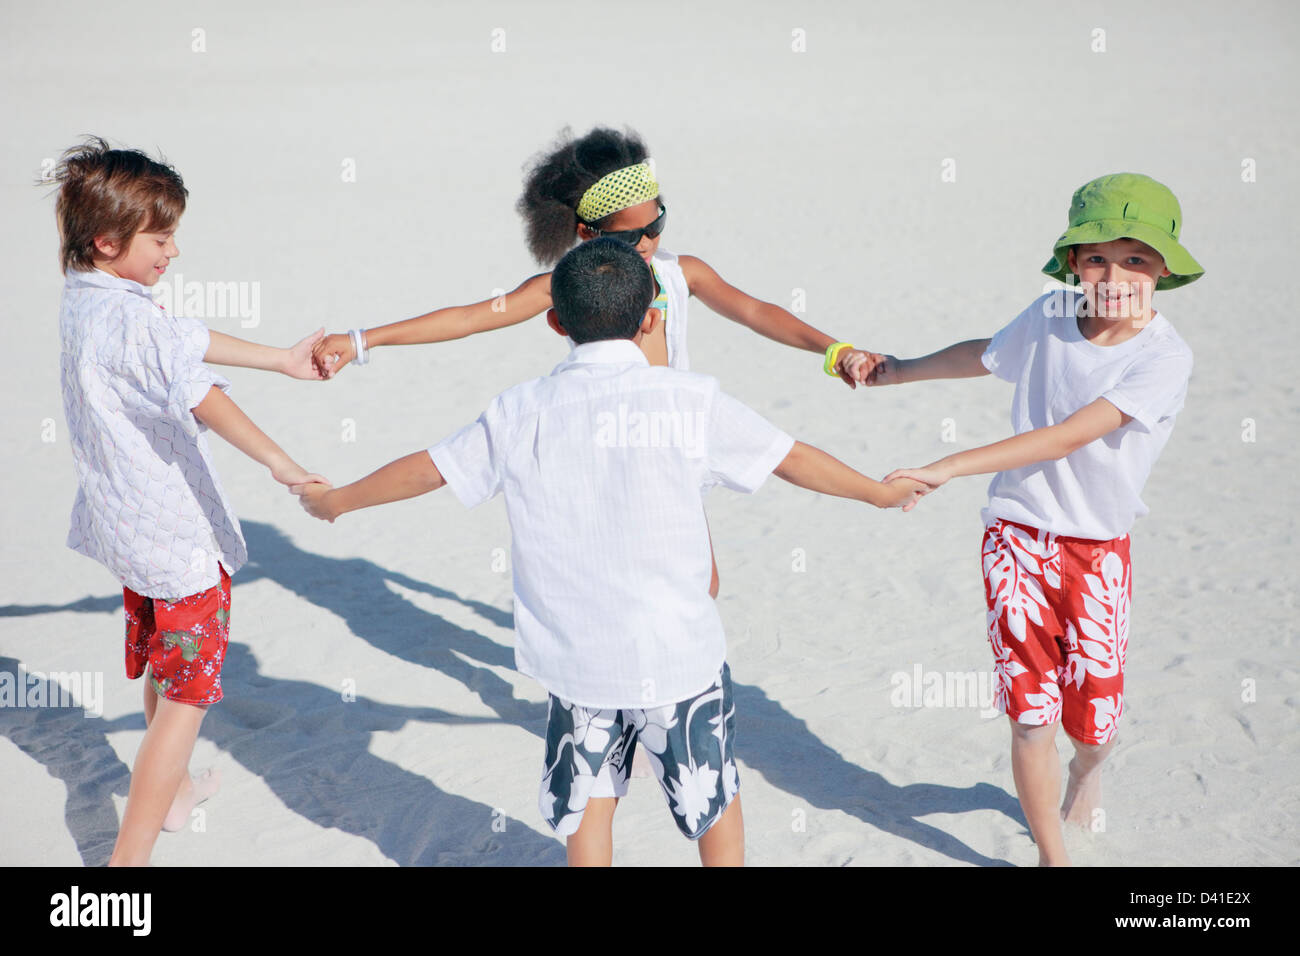 a group of kids holding hands and running around in circles, on a bright summer day at the beach - Stock Image